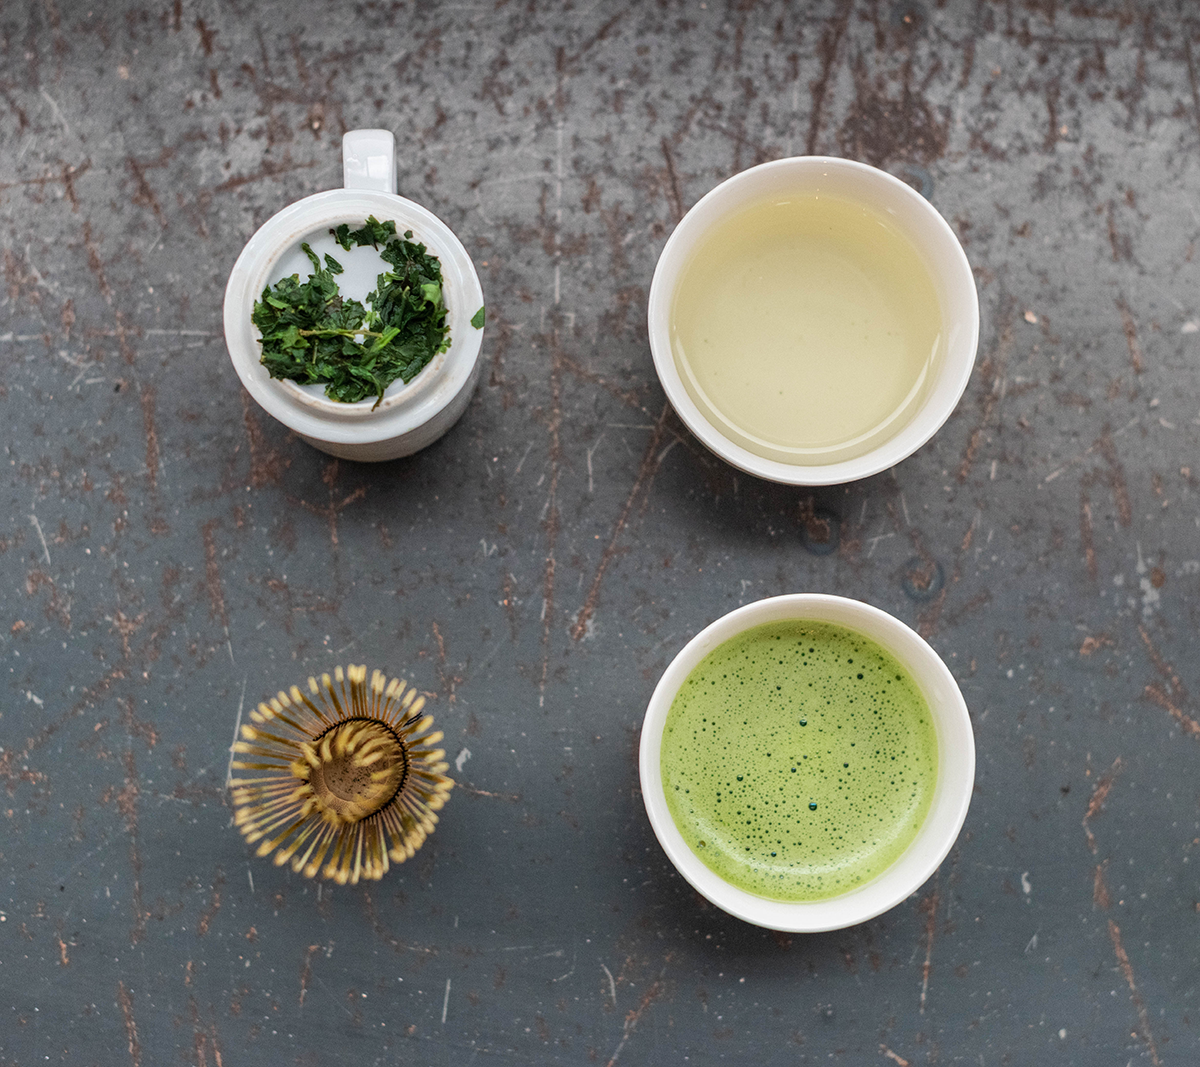 Tencha produces a pale, mellow liquor tasting of sweet sea kelp. Many steps later in the process, tencha will be transformed into full-bodied, unctuous matcha.